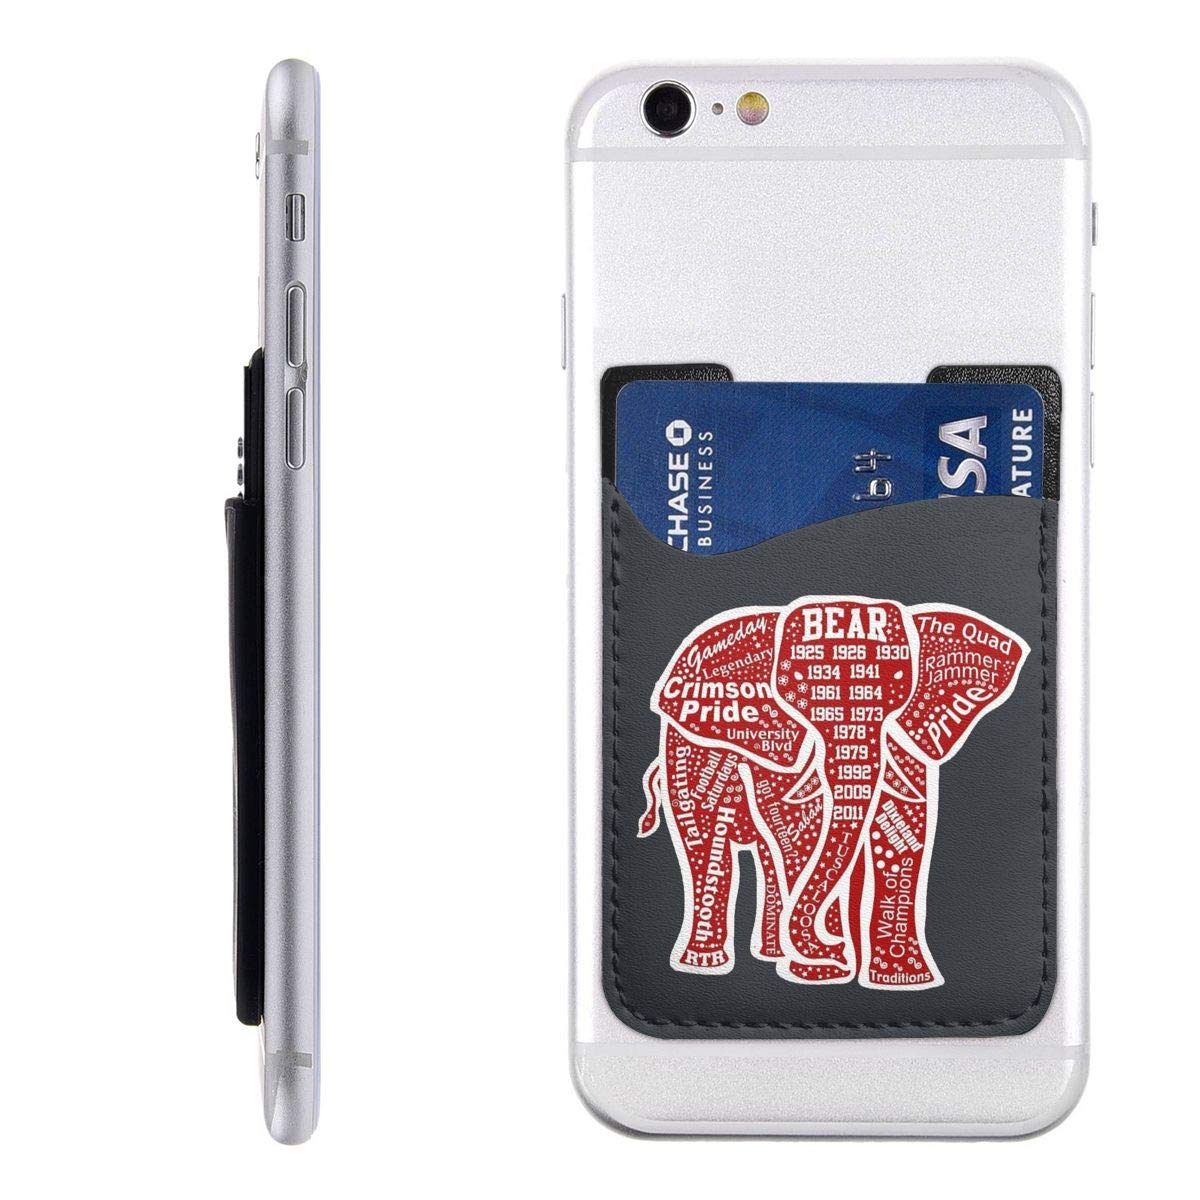 Alabama Red Elephant Cell Phone Pockets Pouch Card Holder Wallet for Back of Phone by XinXin Card Package